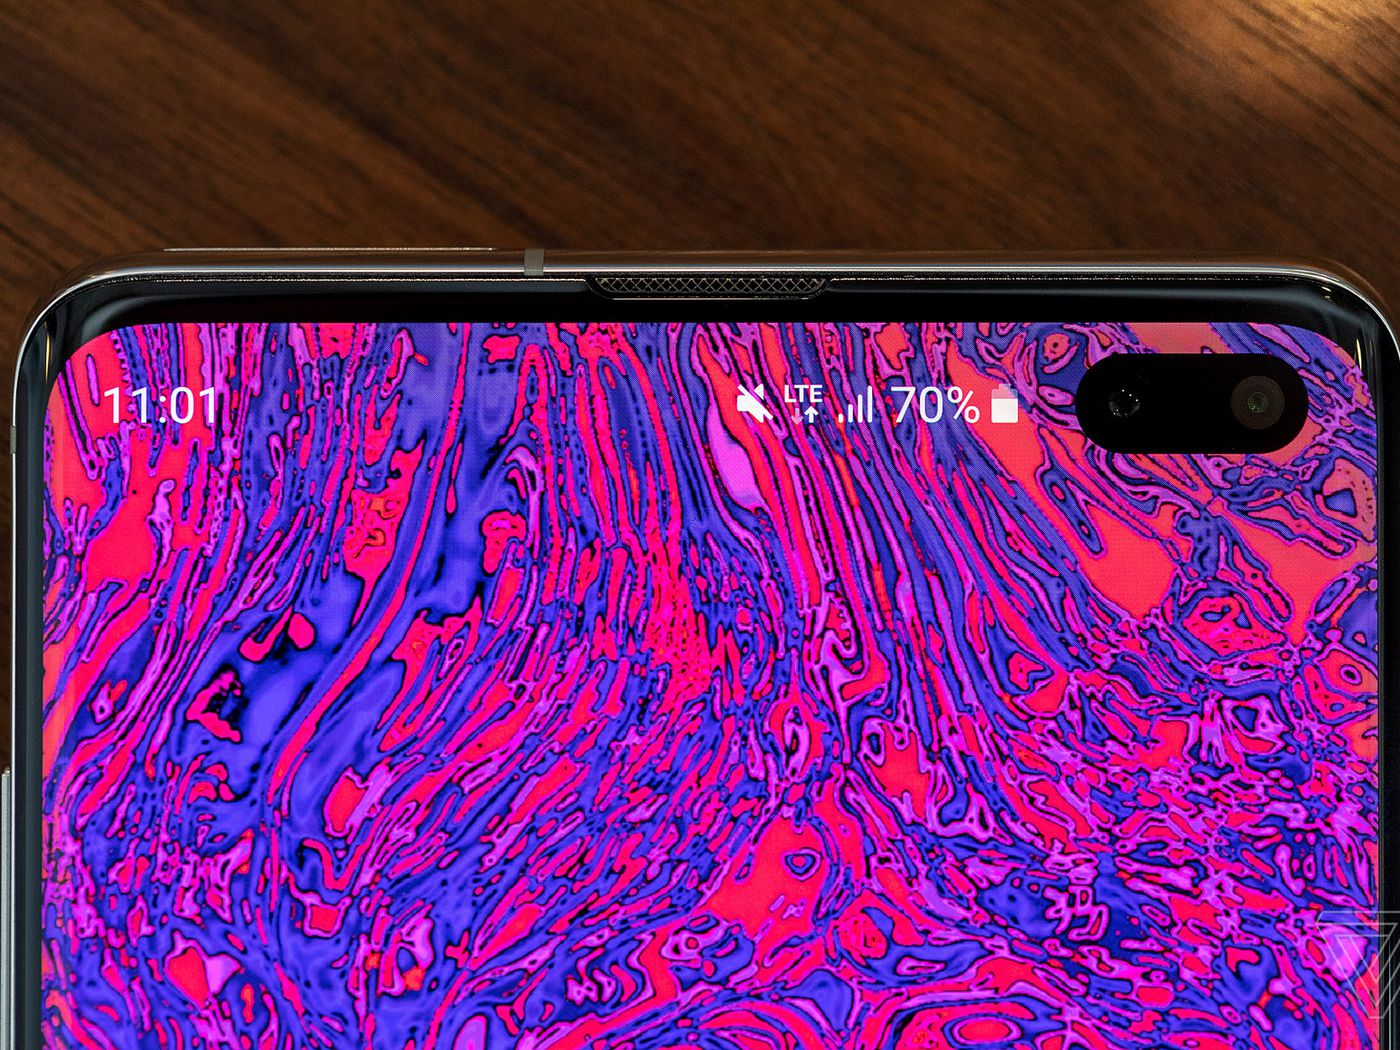 The Best Part Of The Galaxy S10 S Hole Punch Is The Potential For Wallpapers The Verge